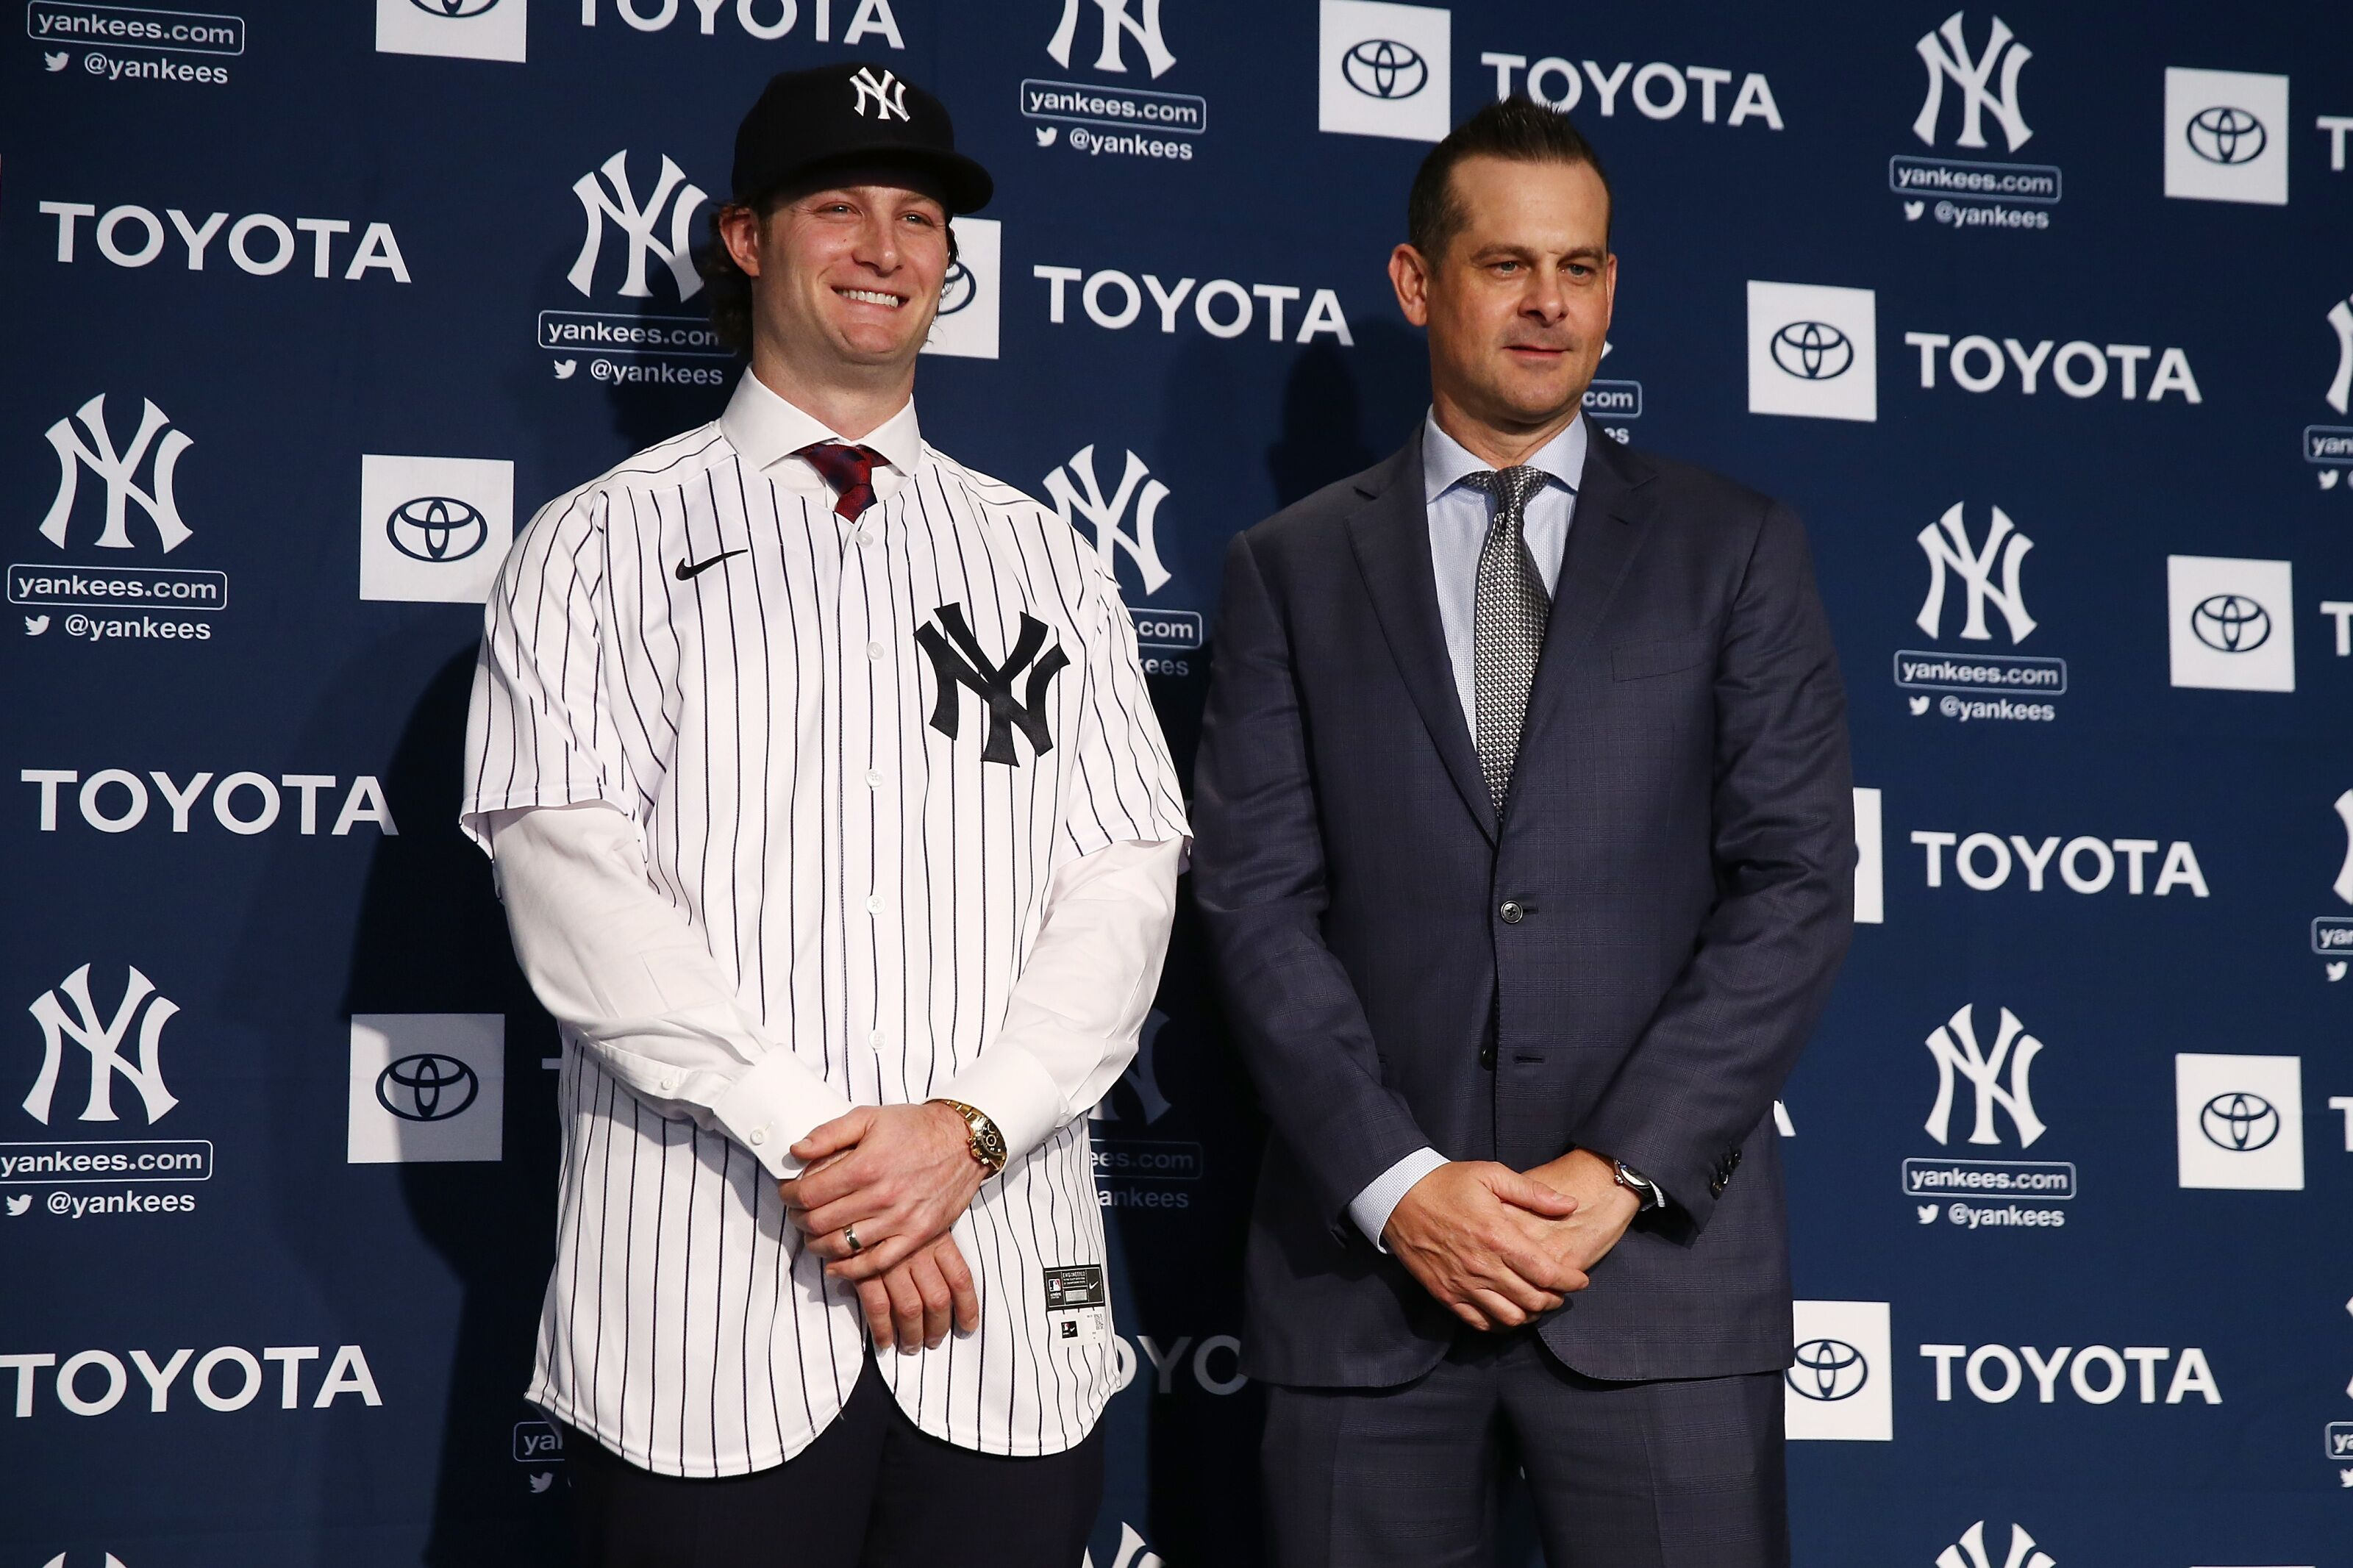 Yankees consider major factors to evaluate player risk: Part 2